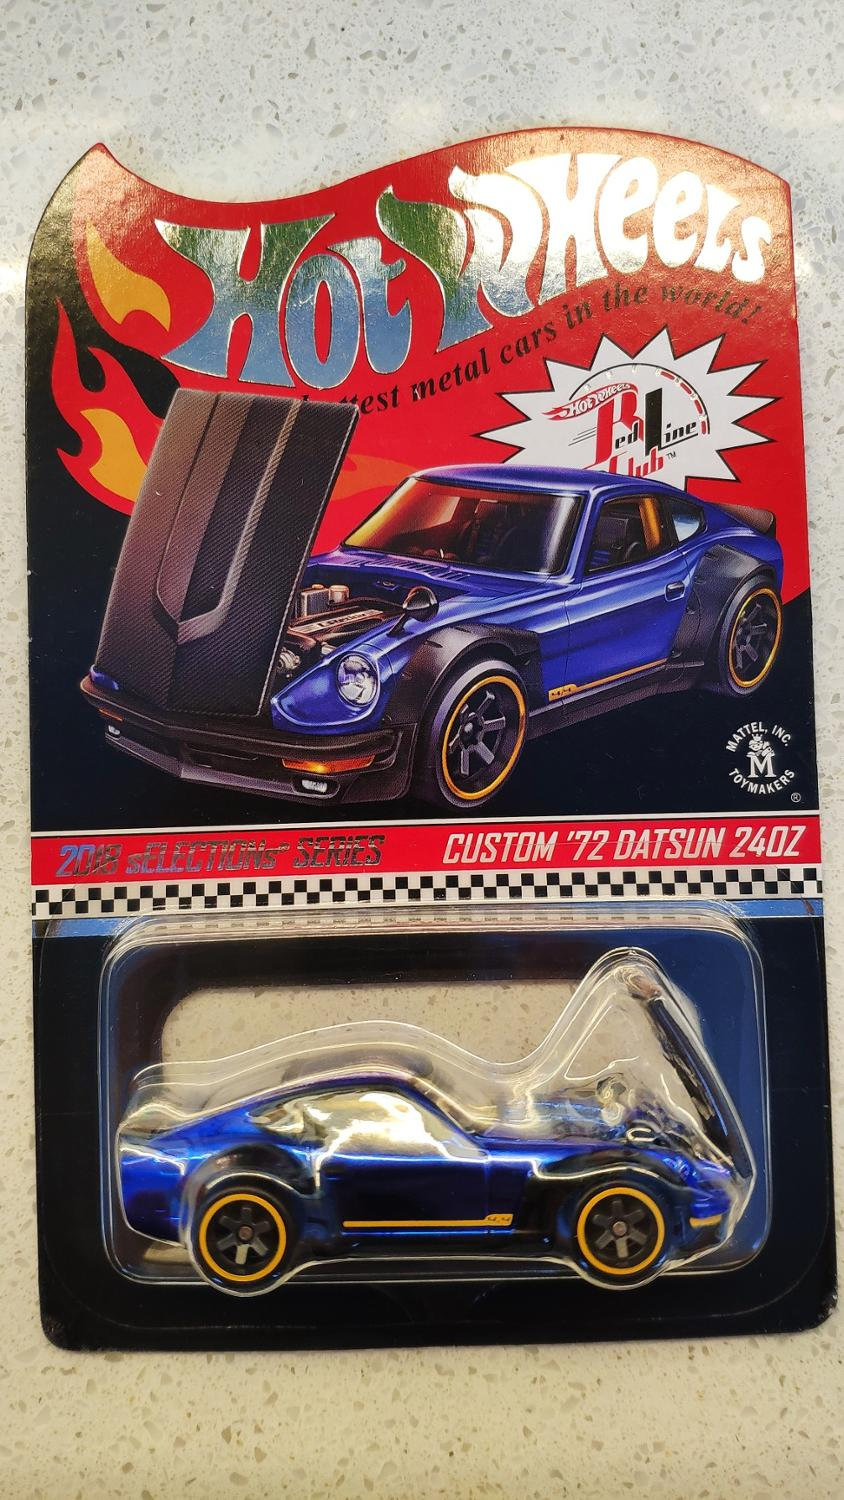 Hot Wheels Car 2018 Red Line Club CUSTOM 72 DATSUN 240Z Collector Edition Metal Diecast Model Cars Kids Toys Gift